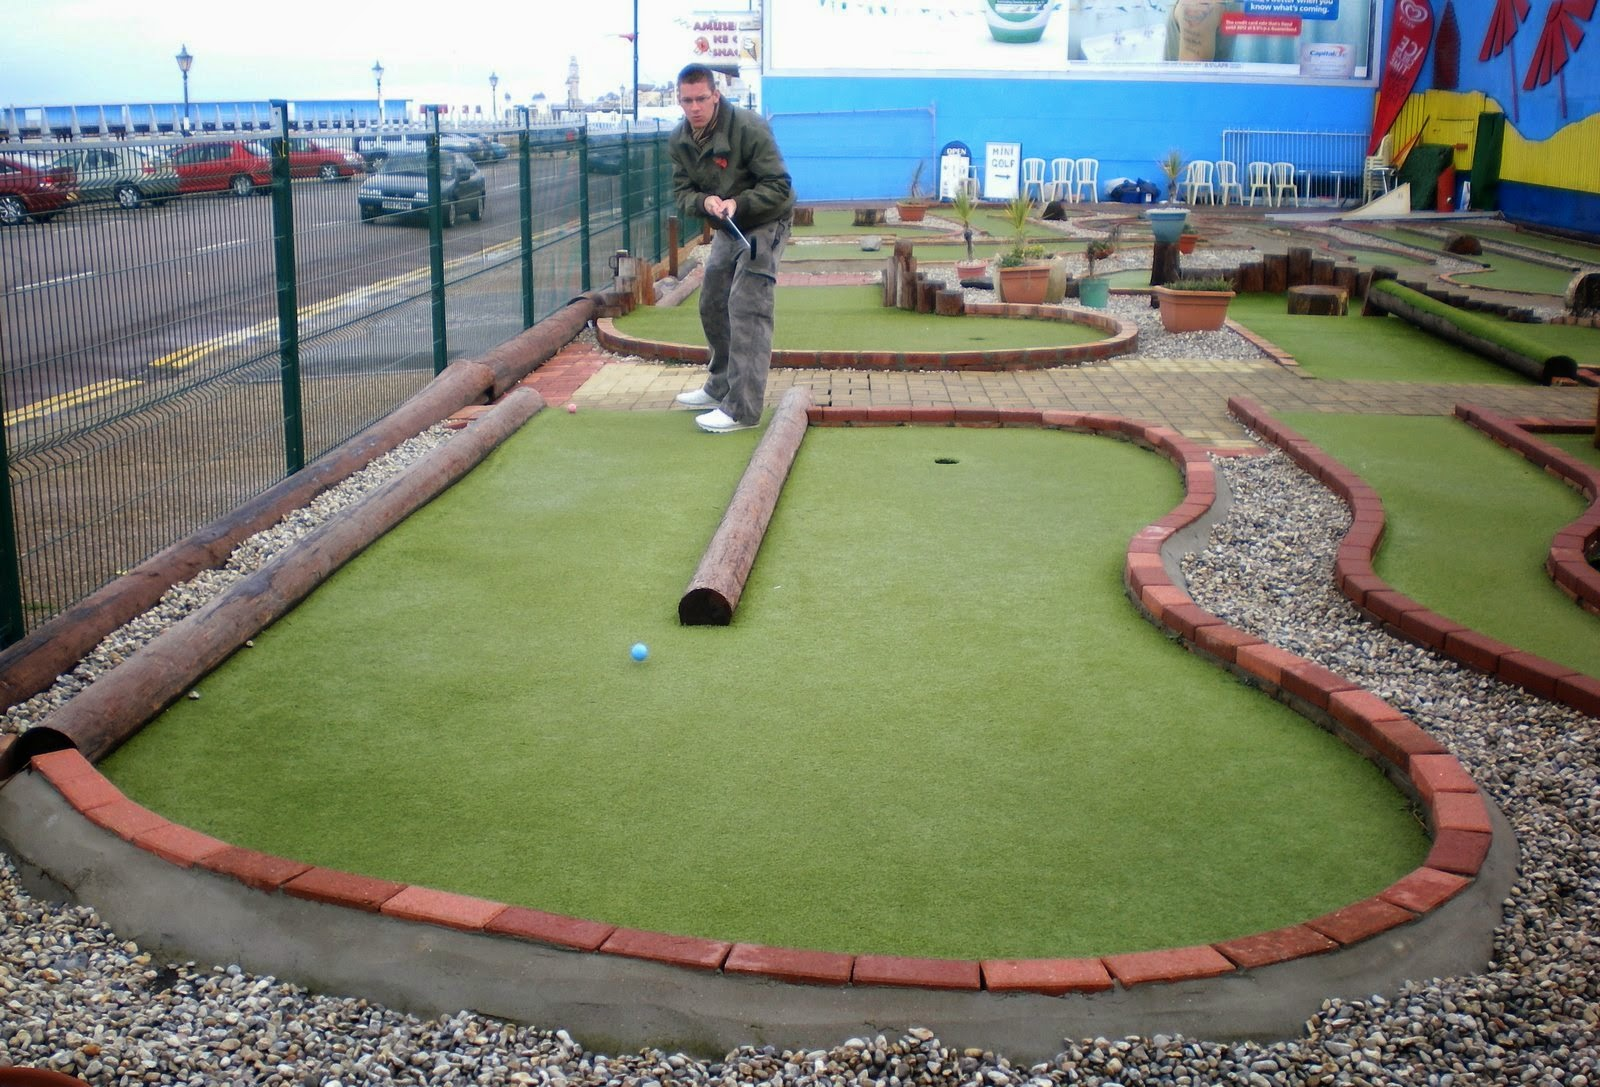 Herne Bay Mini Golf course in Kent